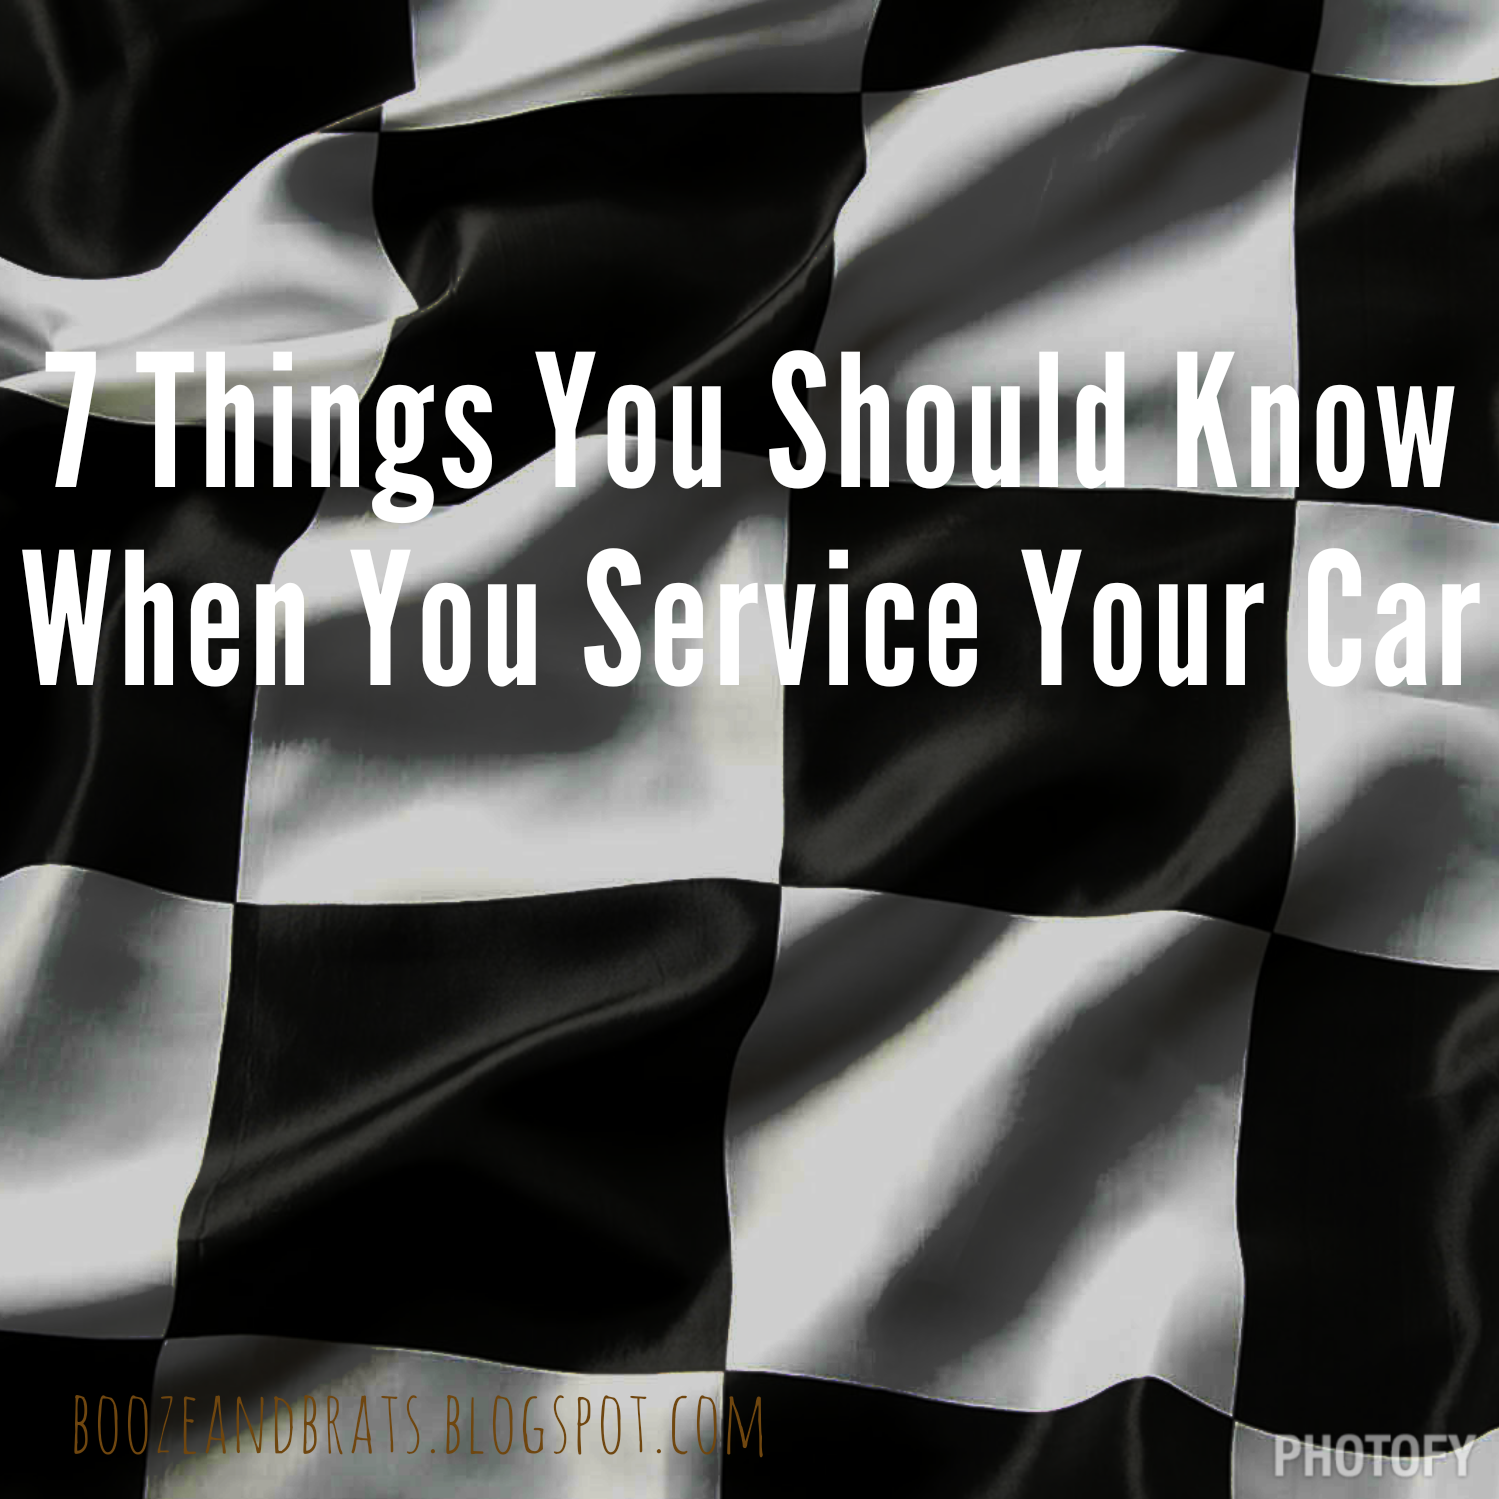 7 Things the Person Servicing Your Vehicle Wants You To Know